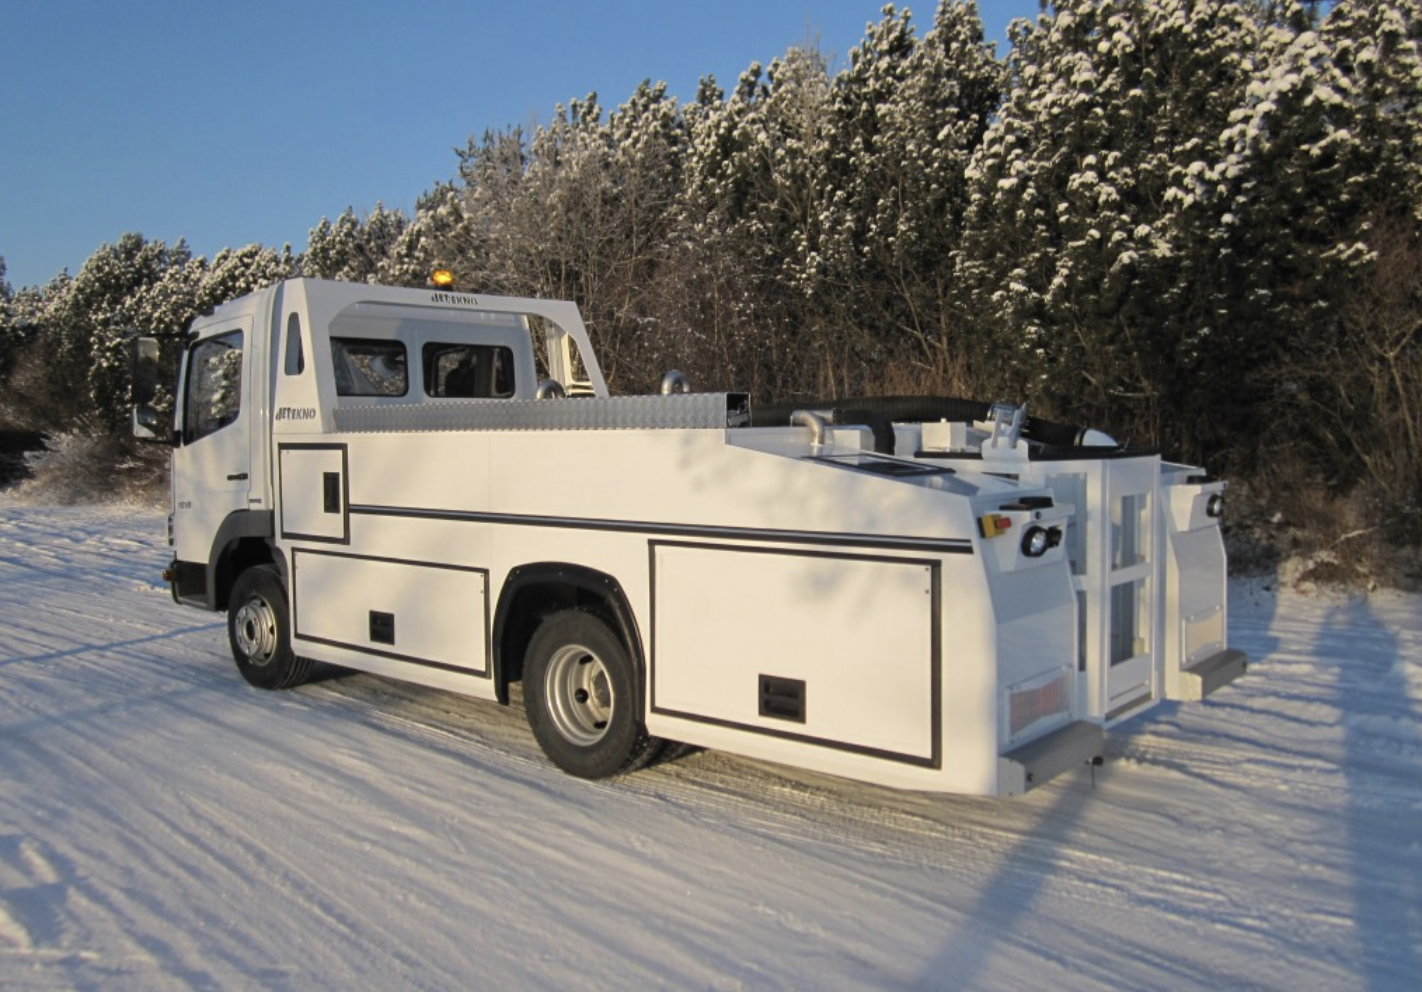 Toilet and water service trucks - compact even with lift platform